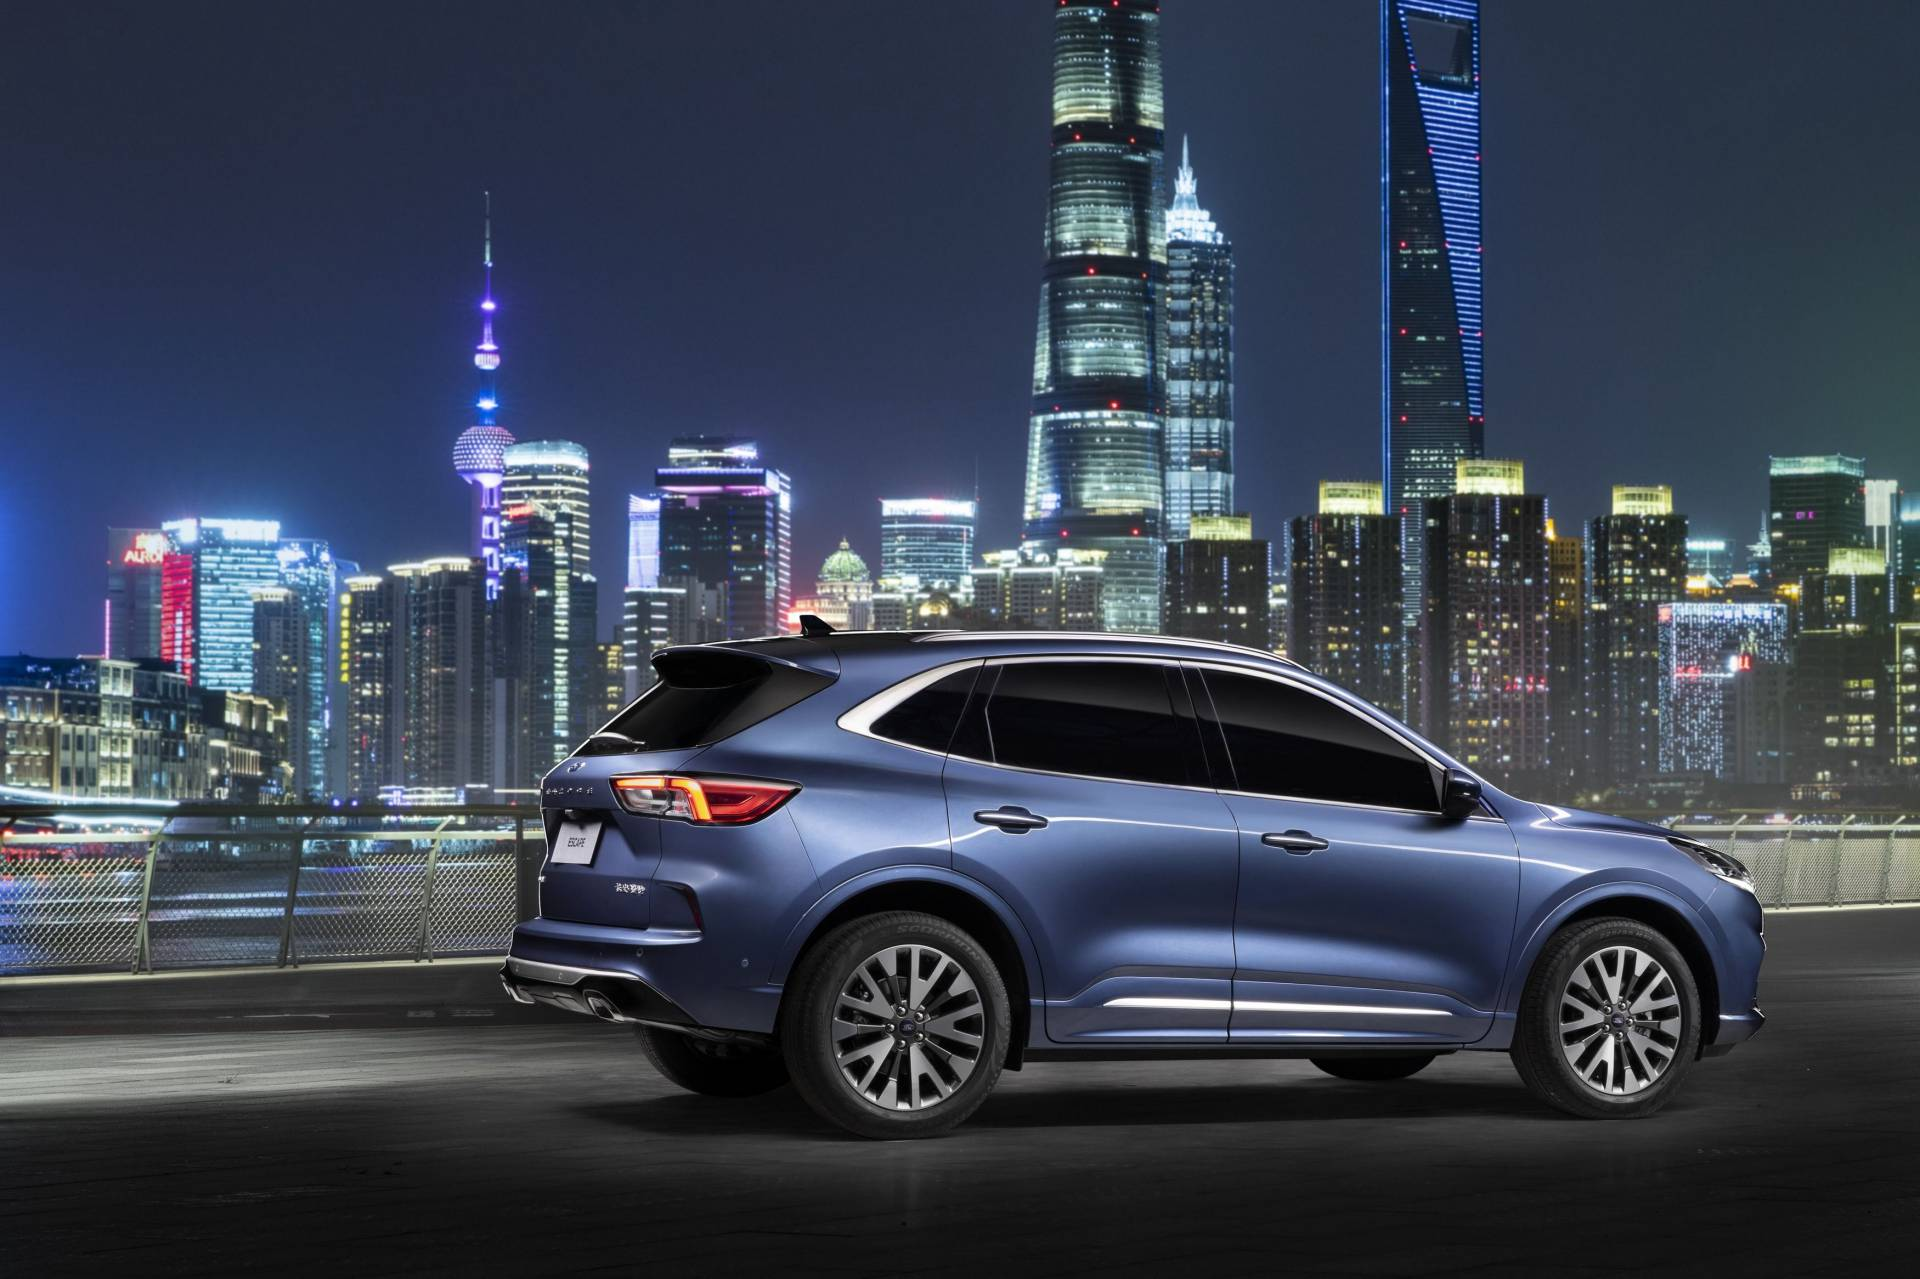 2020-ford-escape-china-5.jpeg